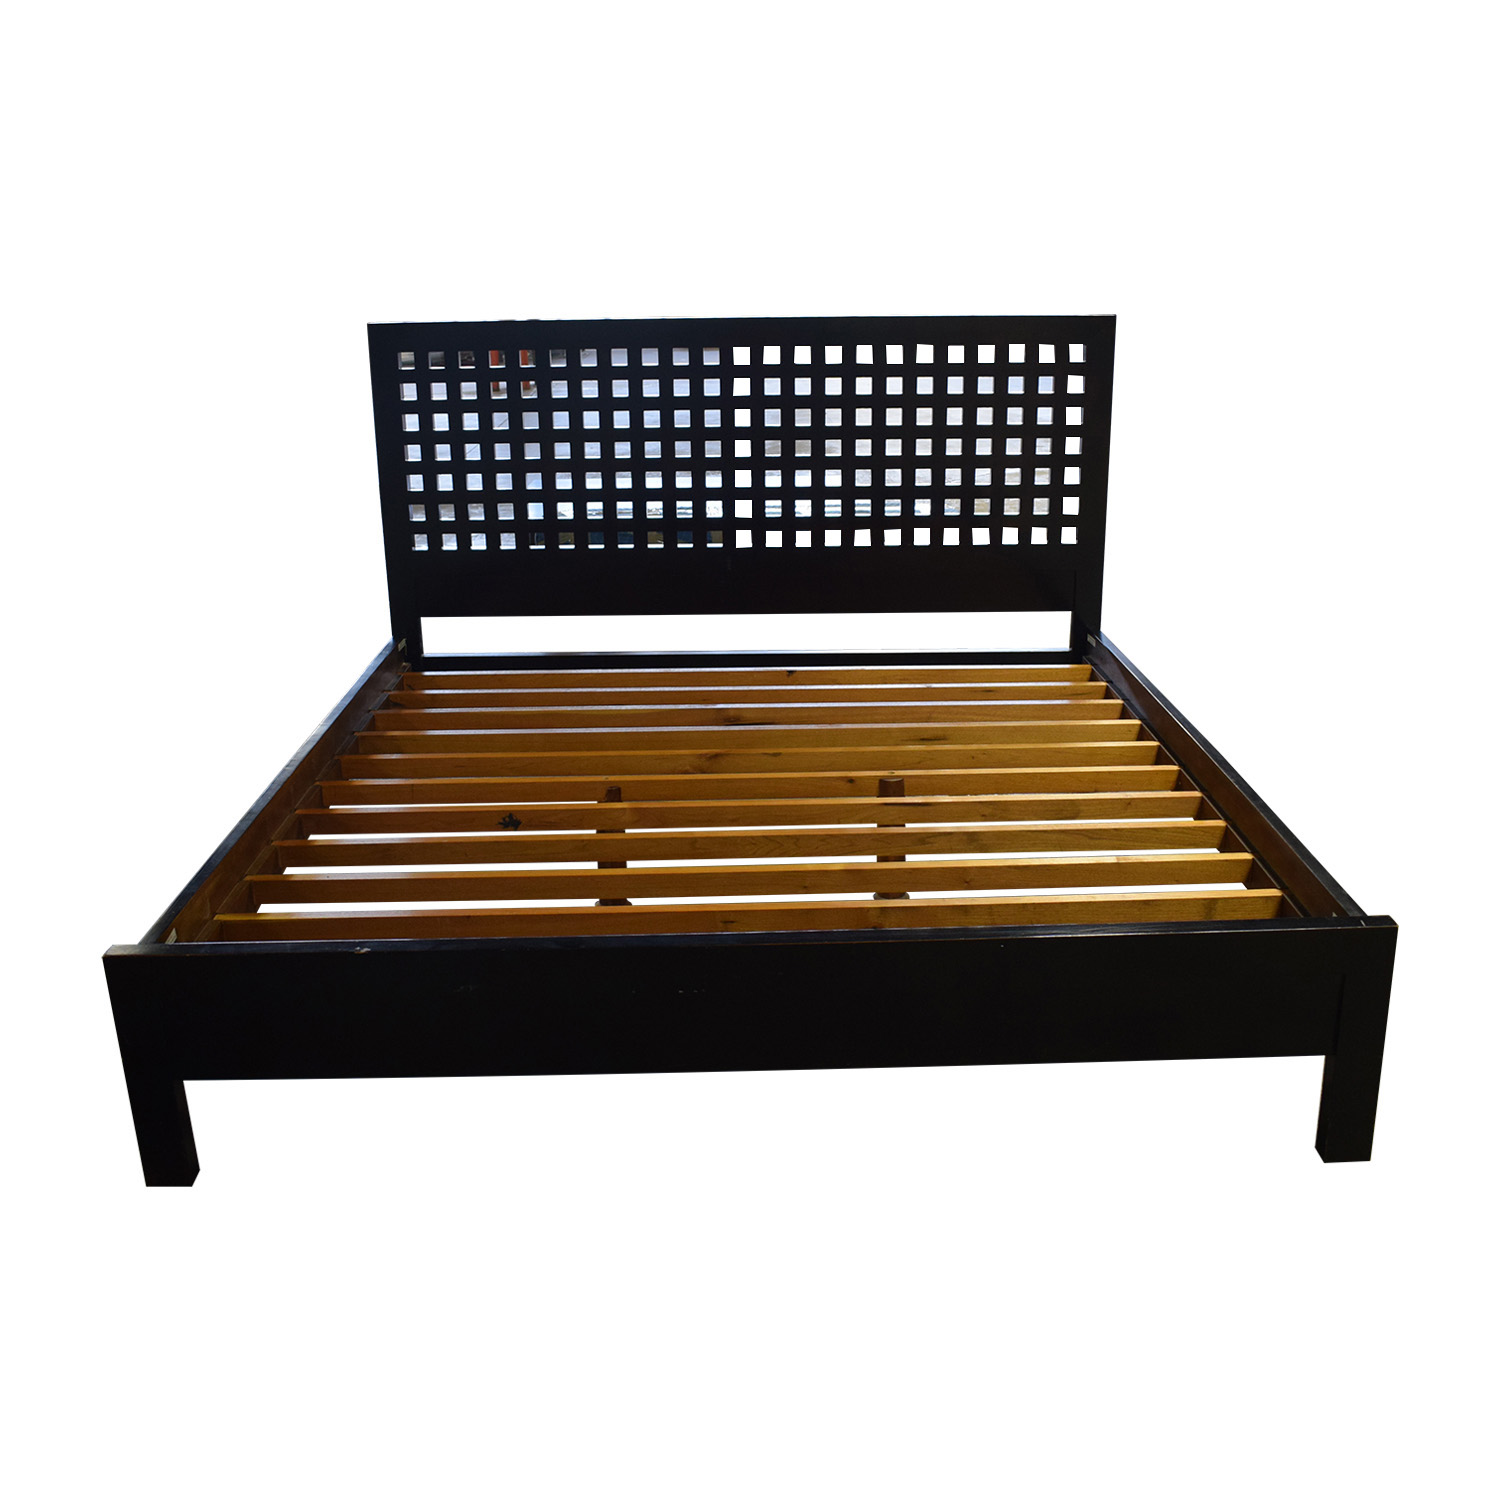 shop Crate & Barrel Wood Platform King Bed Frame Crate & Barrel